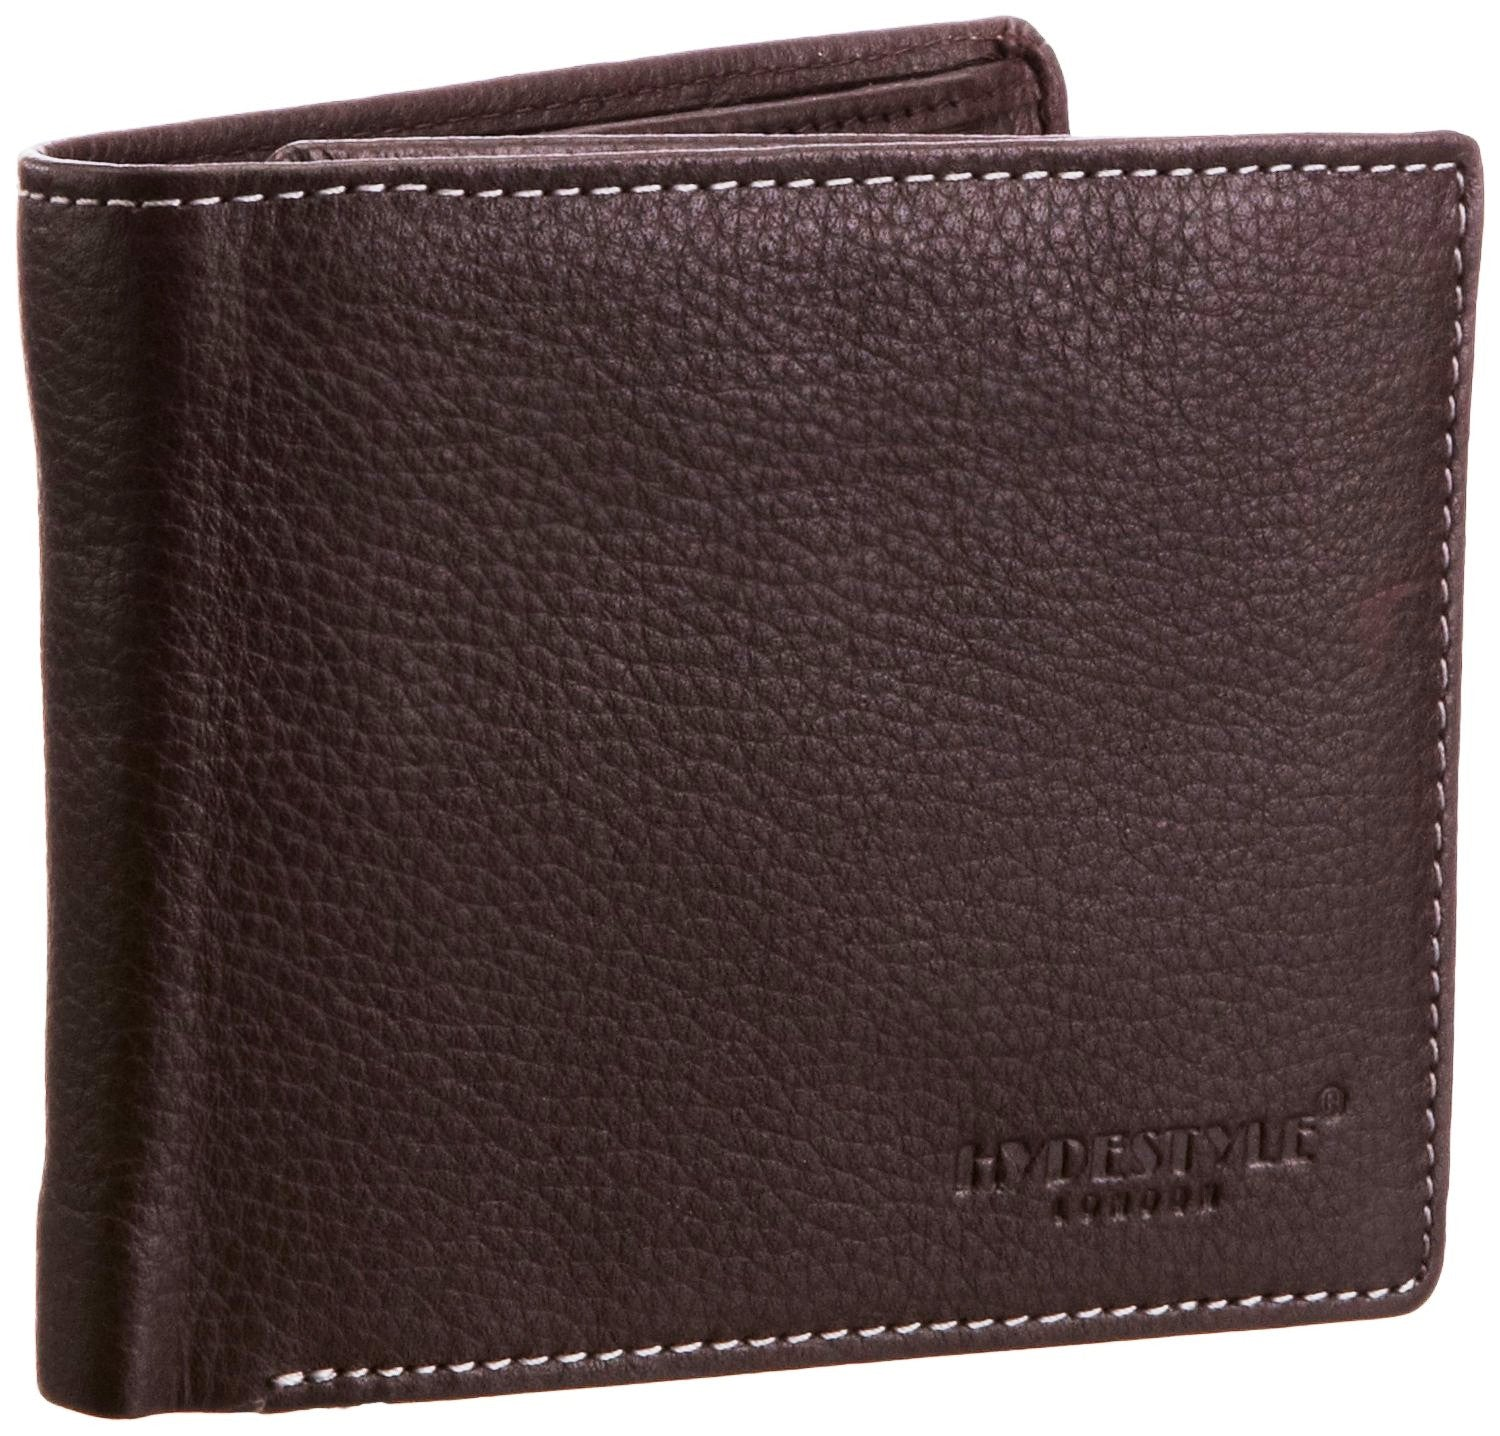 Pratico - mens ID pullout leather trifold wallet #GW51 Brown